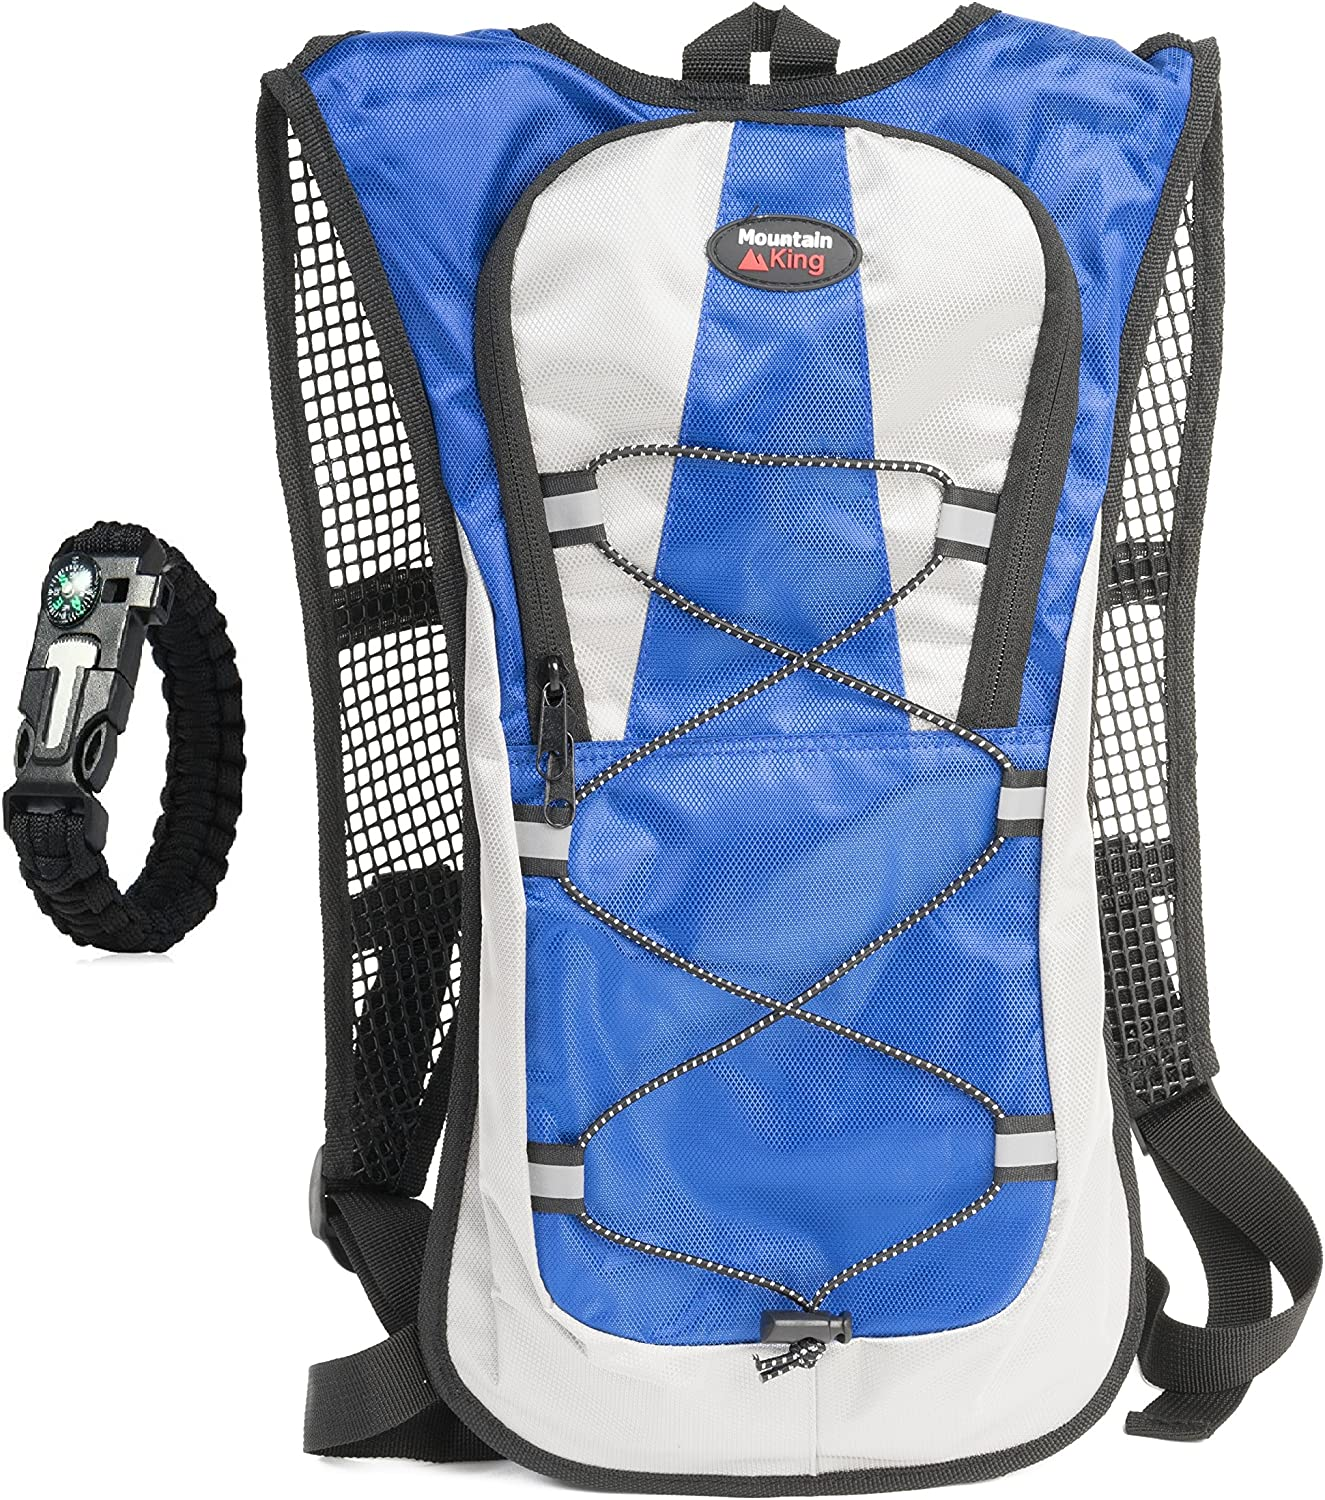 Hydration Pack Backpack 2L 2 Liter Water Bladder Best Pack for Hiking, Running, Climbing, Cycling, Biking – Includes Flint Fire Starter with Built in Compass and Whistle – by Mountain King